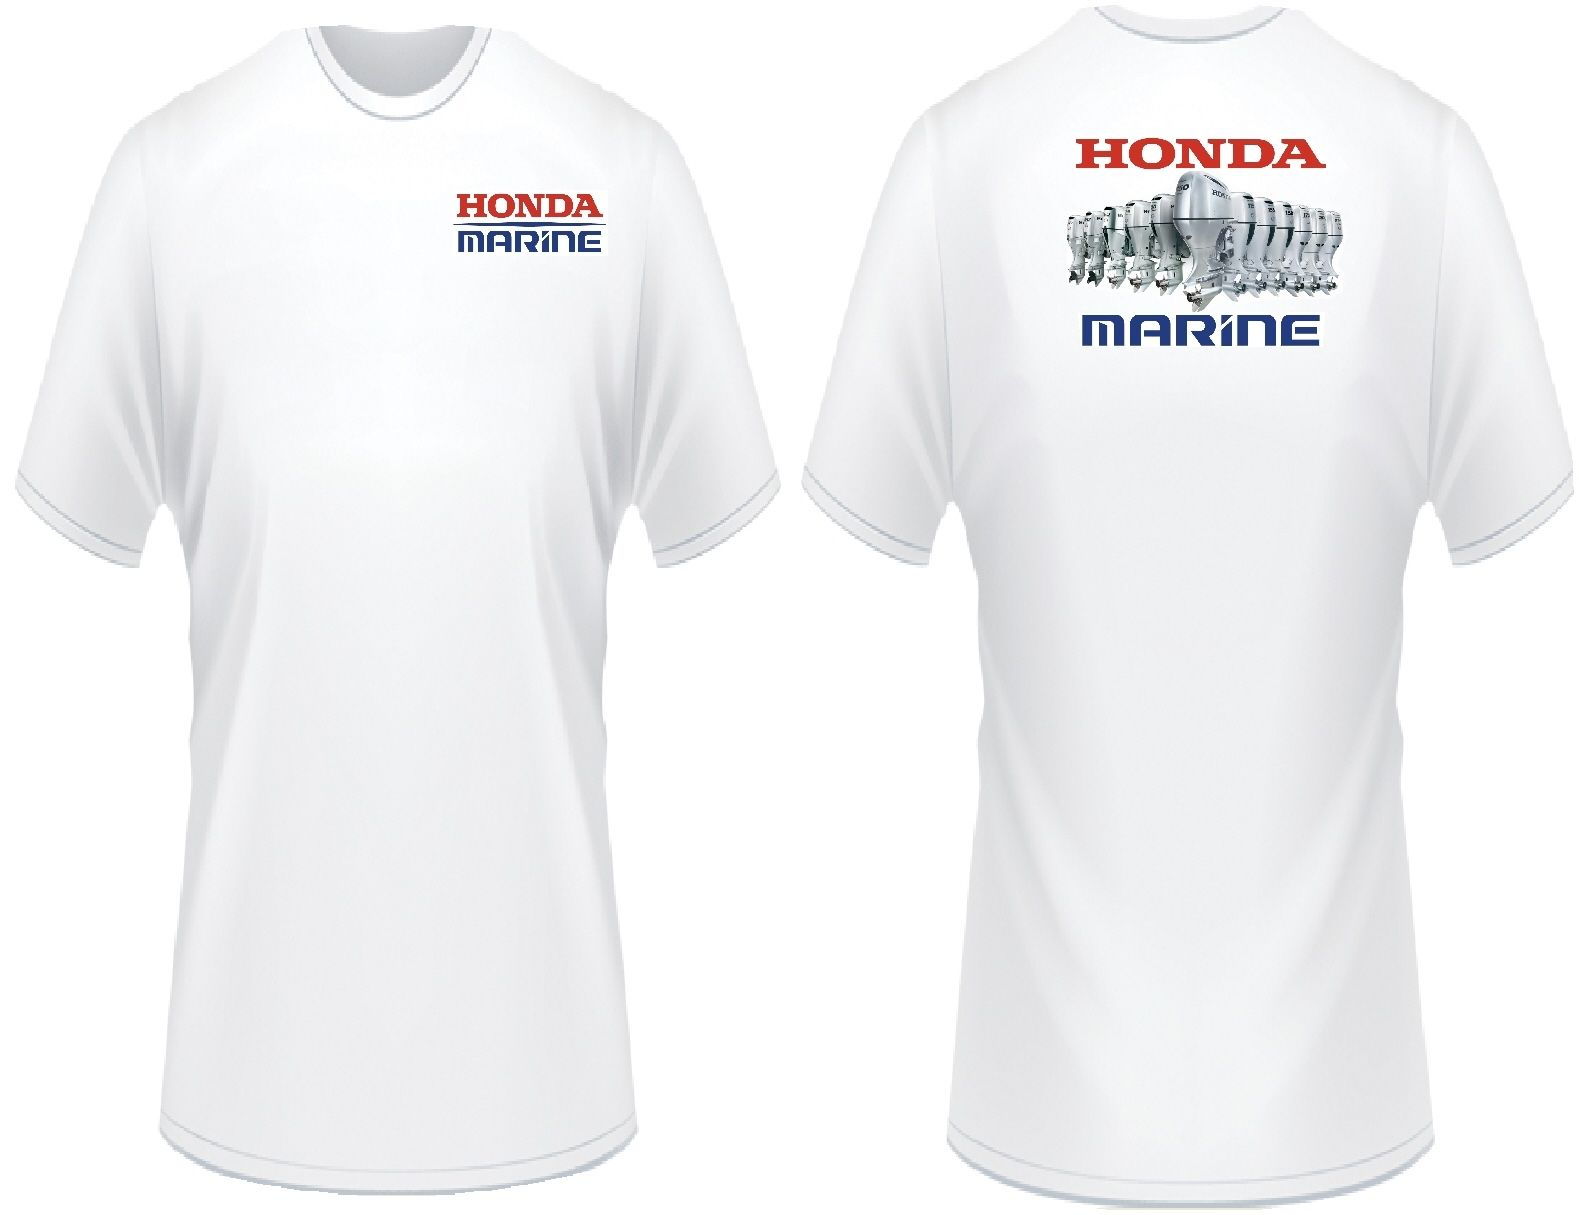 Honda Outboards T-Shirt